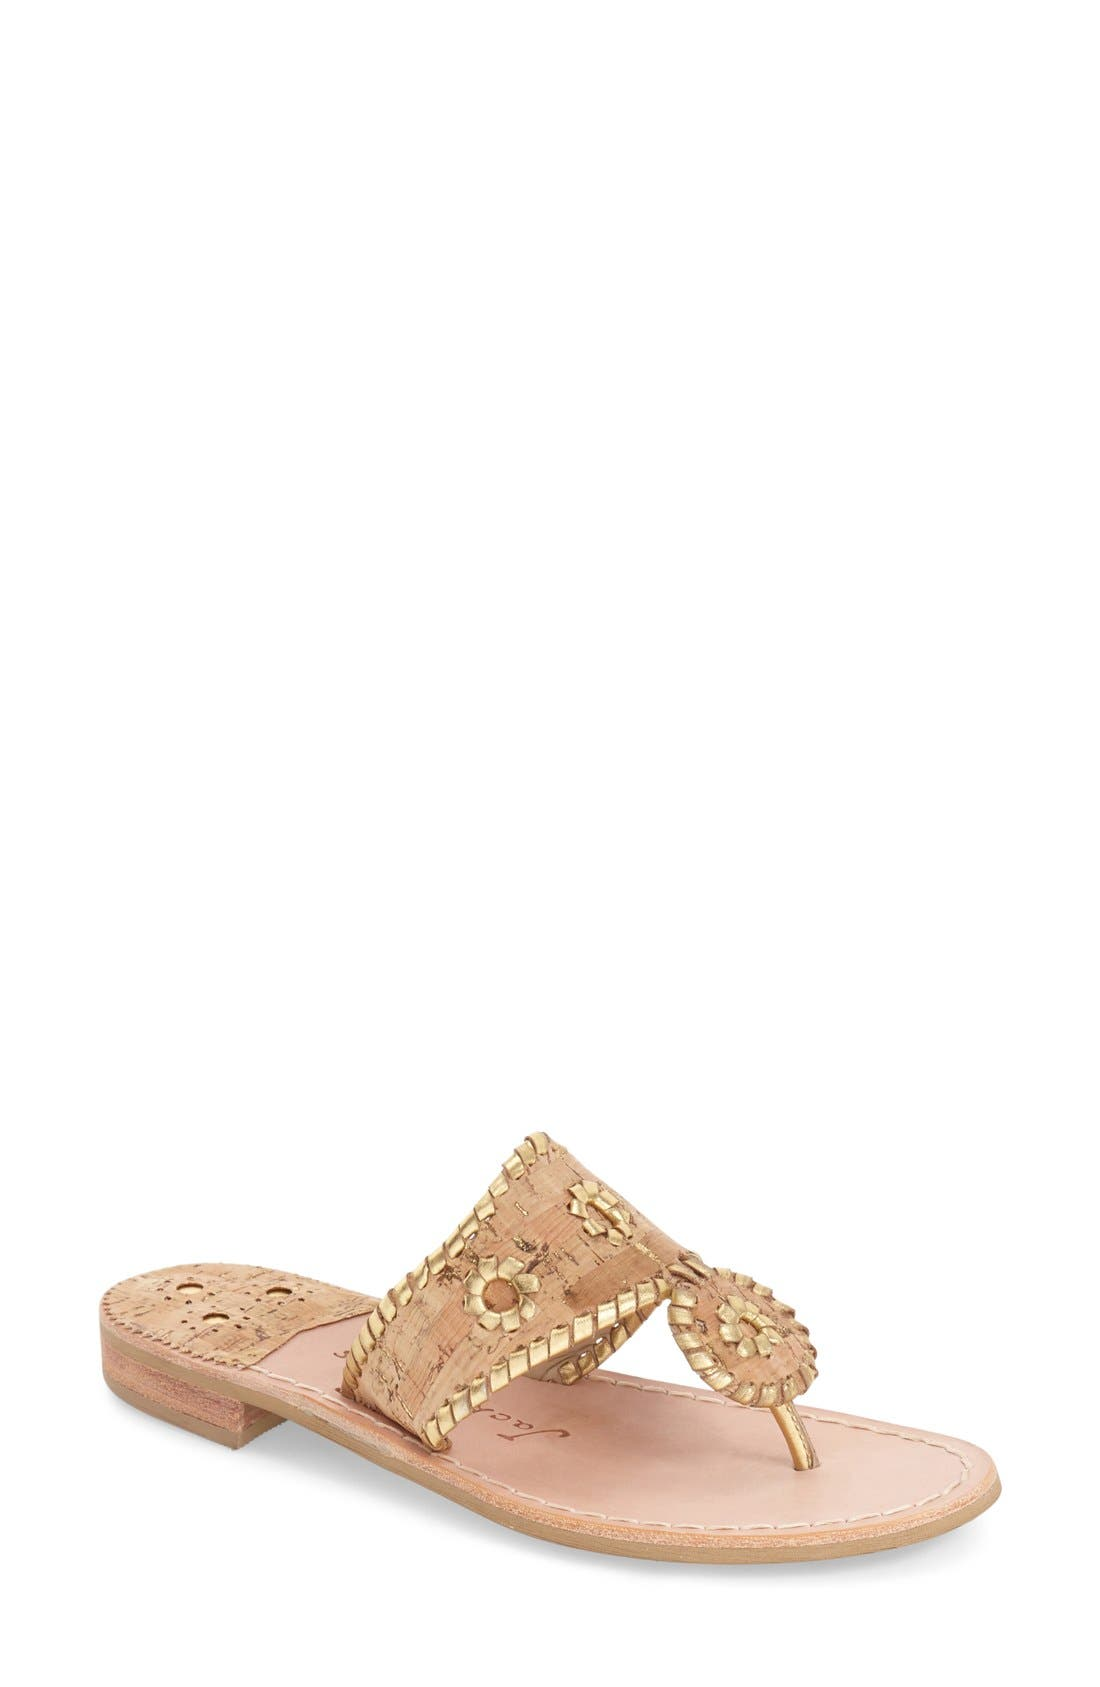 Jack Rogers Whipstitched Flip Flop W - Metallic